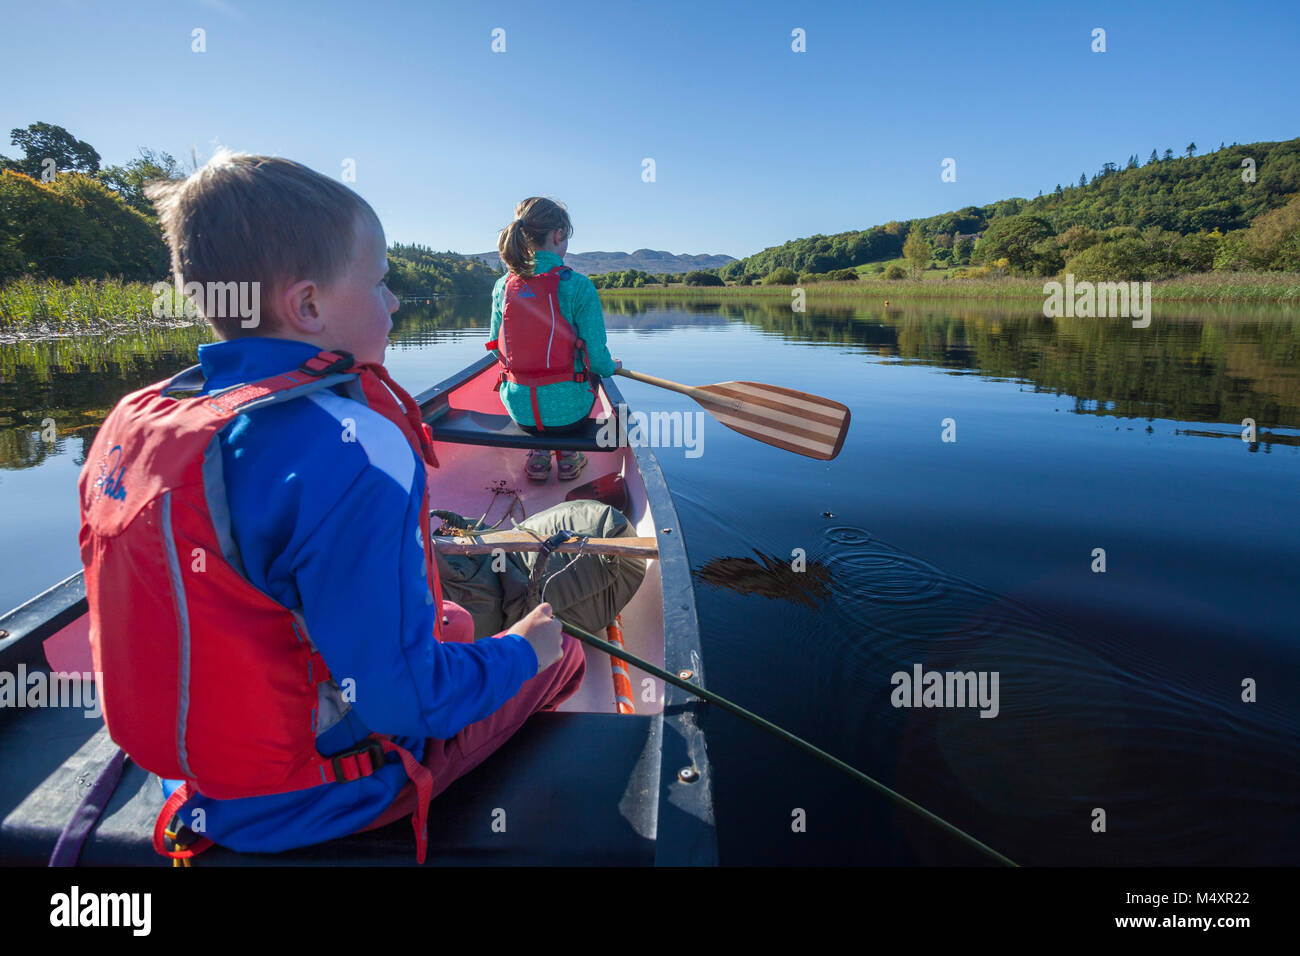 Family canoeing the Garavogue River to Lough Gill, Sligo town, County Sligo, Ireland. - Stock Image